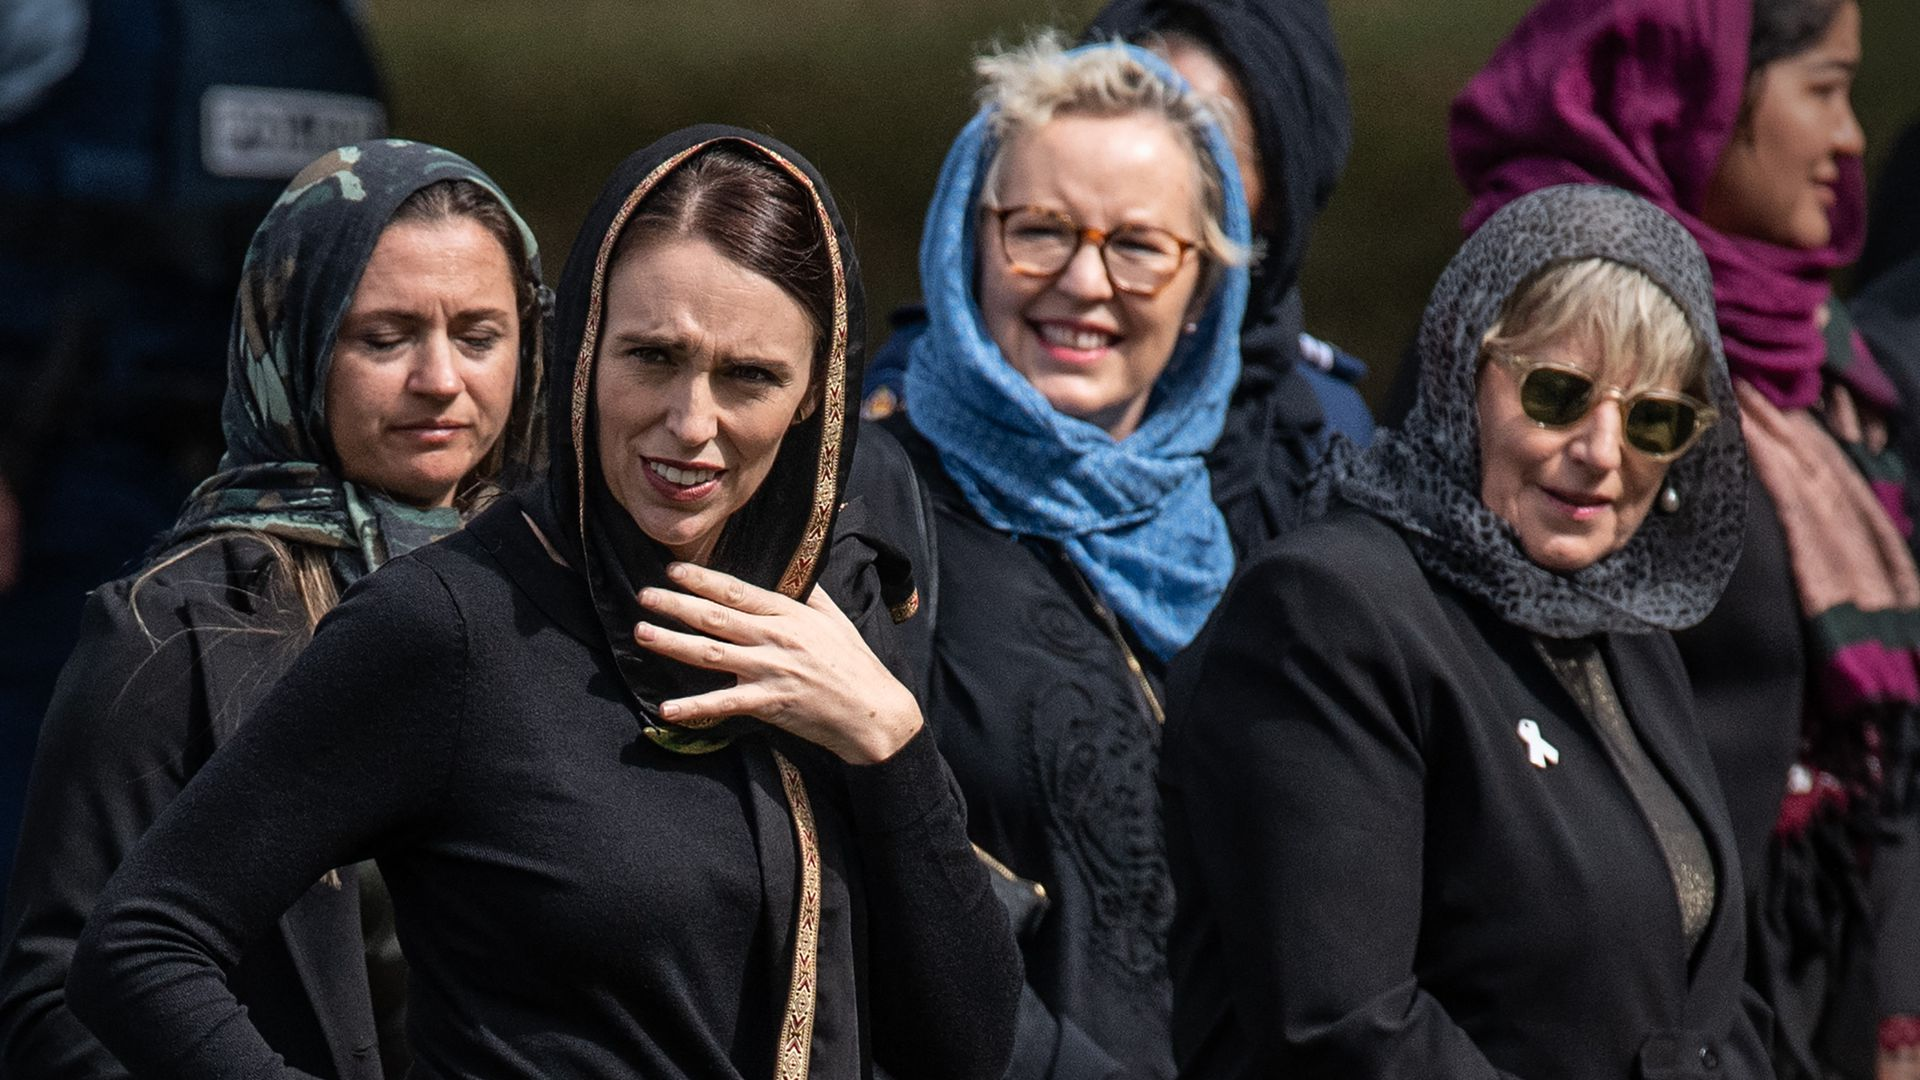 Prime Minister Jacinda Ardern during Friday's national day of reflection.